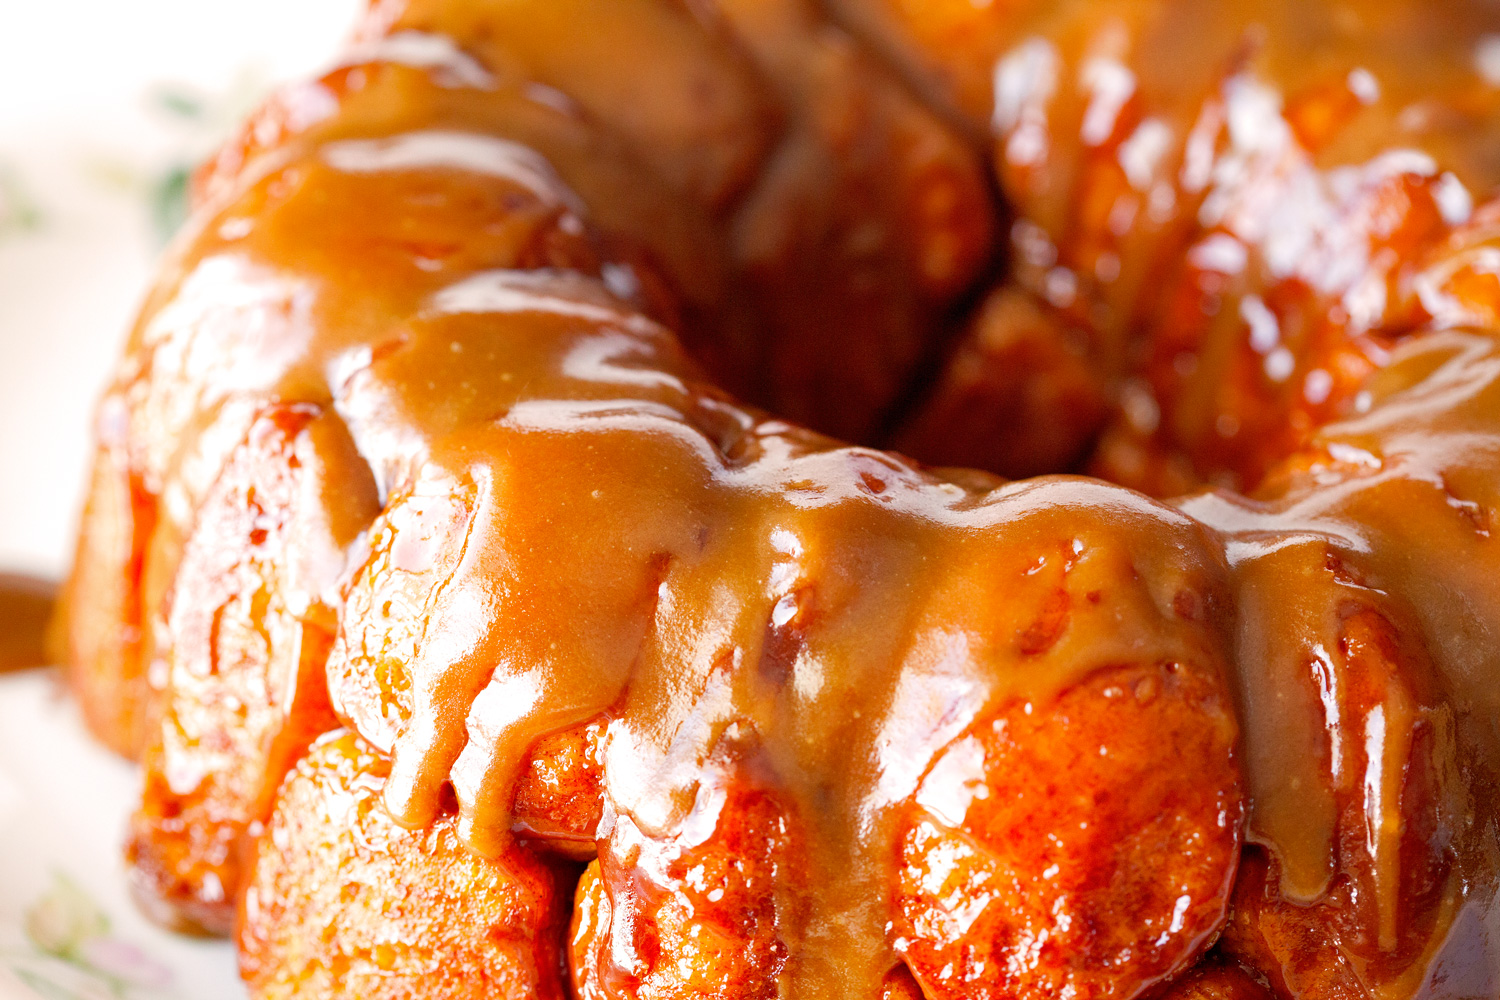 Homemade Monkey Bread by Deliciously Yum!